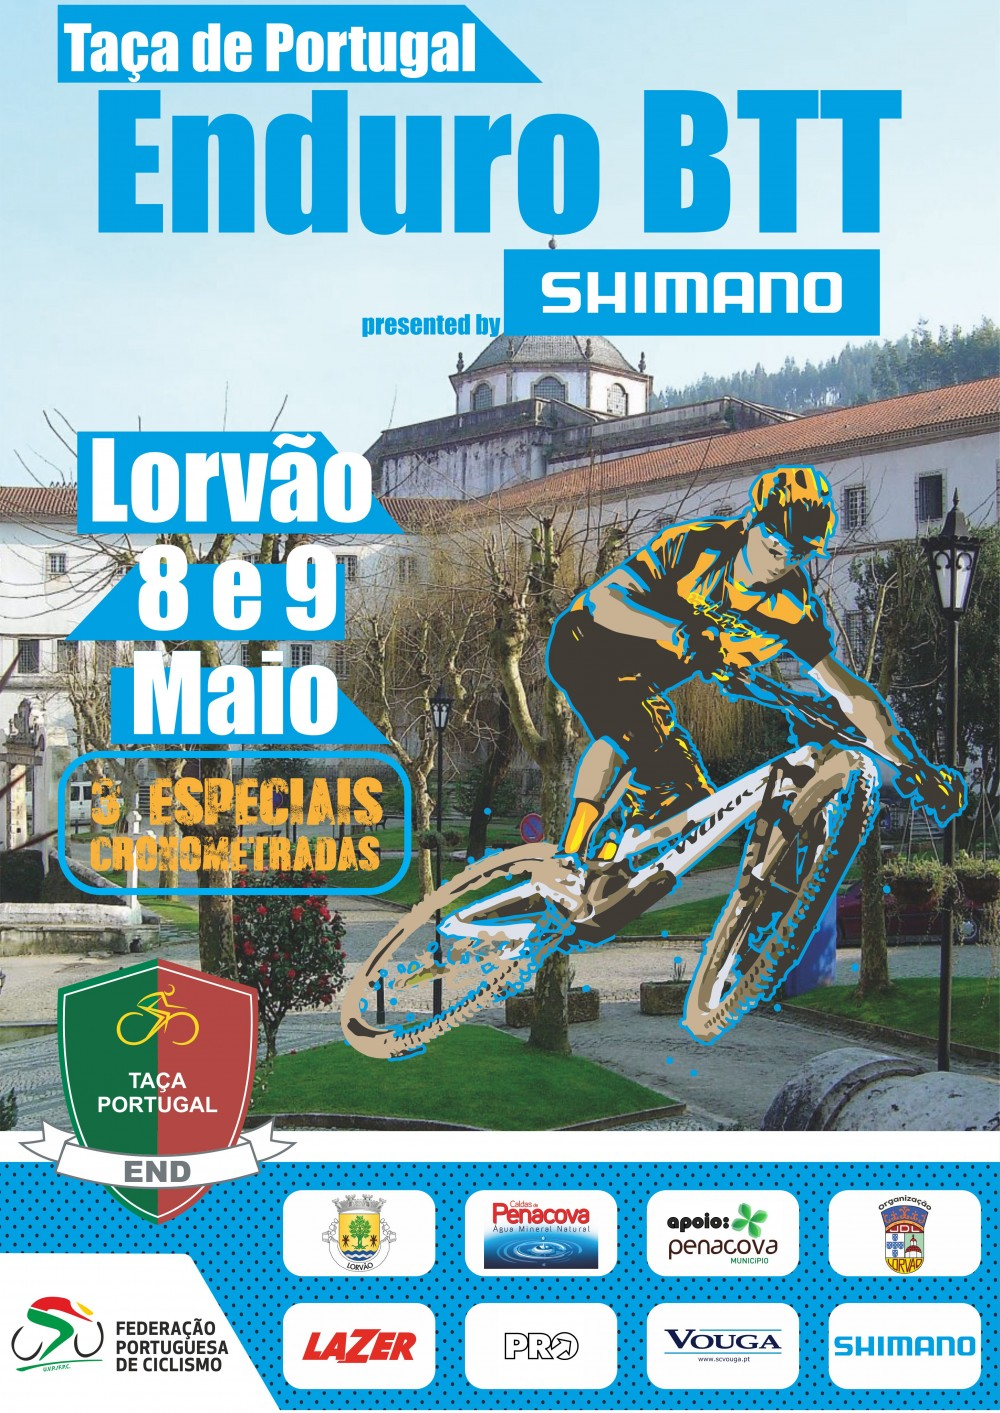 1ª Taça de Portugal Enduro presented by Shimano